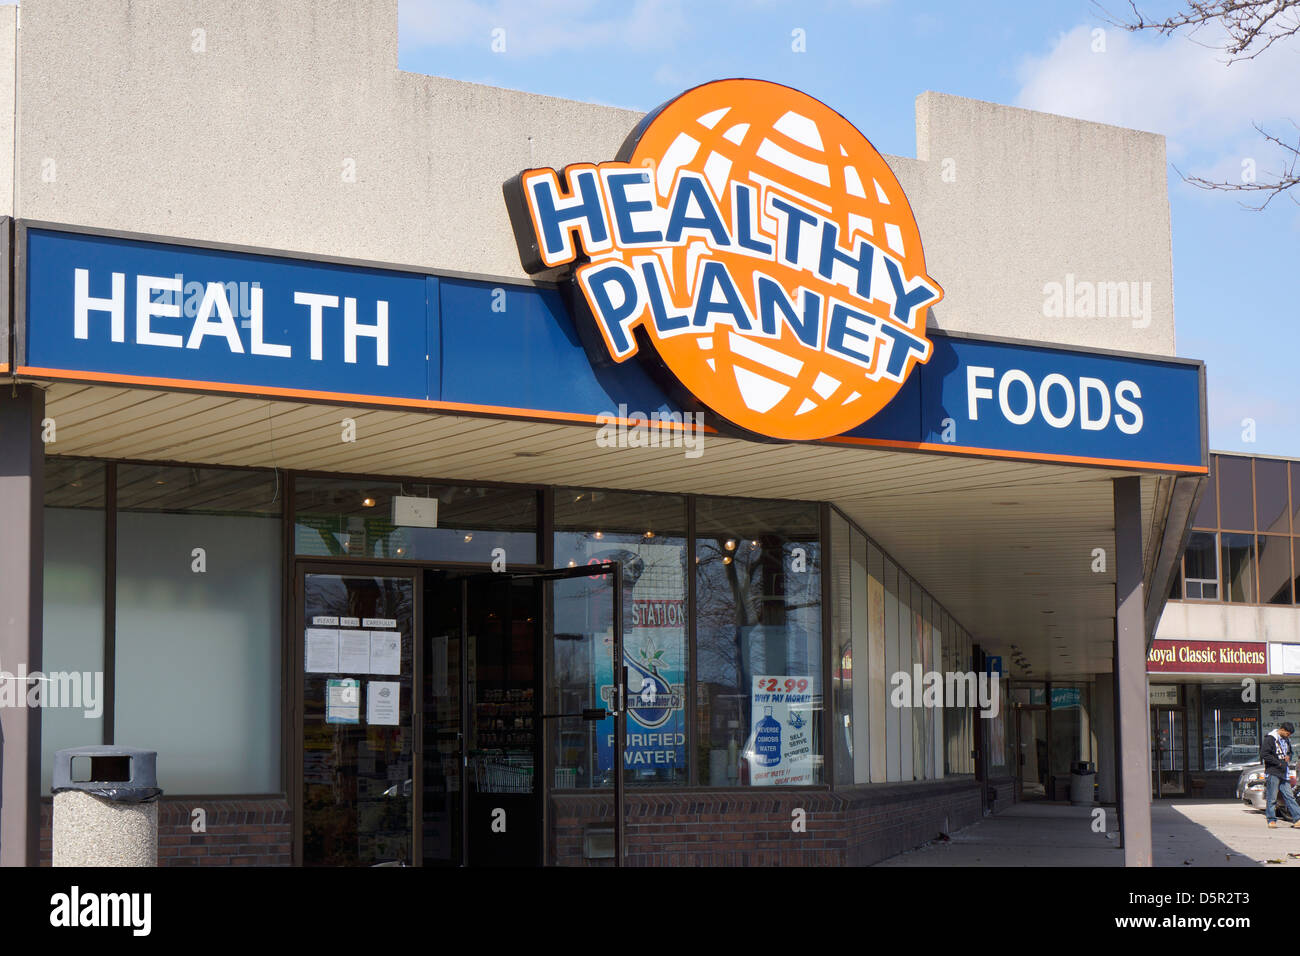 Health Foods, Vitamins and Nutritional Supplements Store, Ontario, Canada - Stock Image